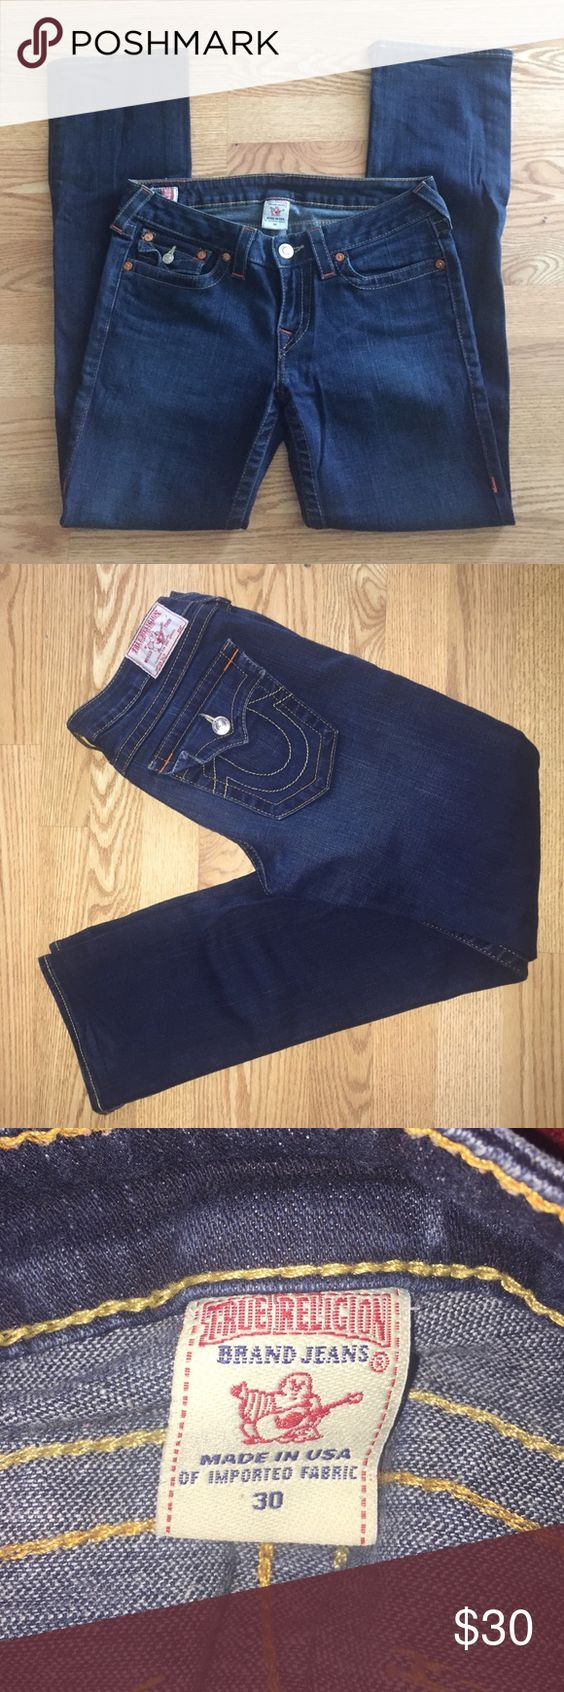 "True Religion Billy Straight Leg Jeans Size 30 True Religion Billy Straight Leg Jeans Size 30. Inseam 31"". True Religion Jeans Straight Leg"